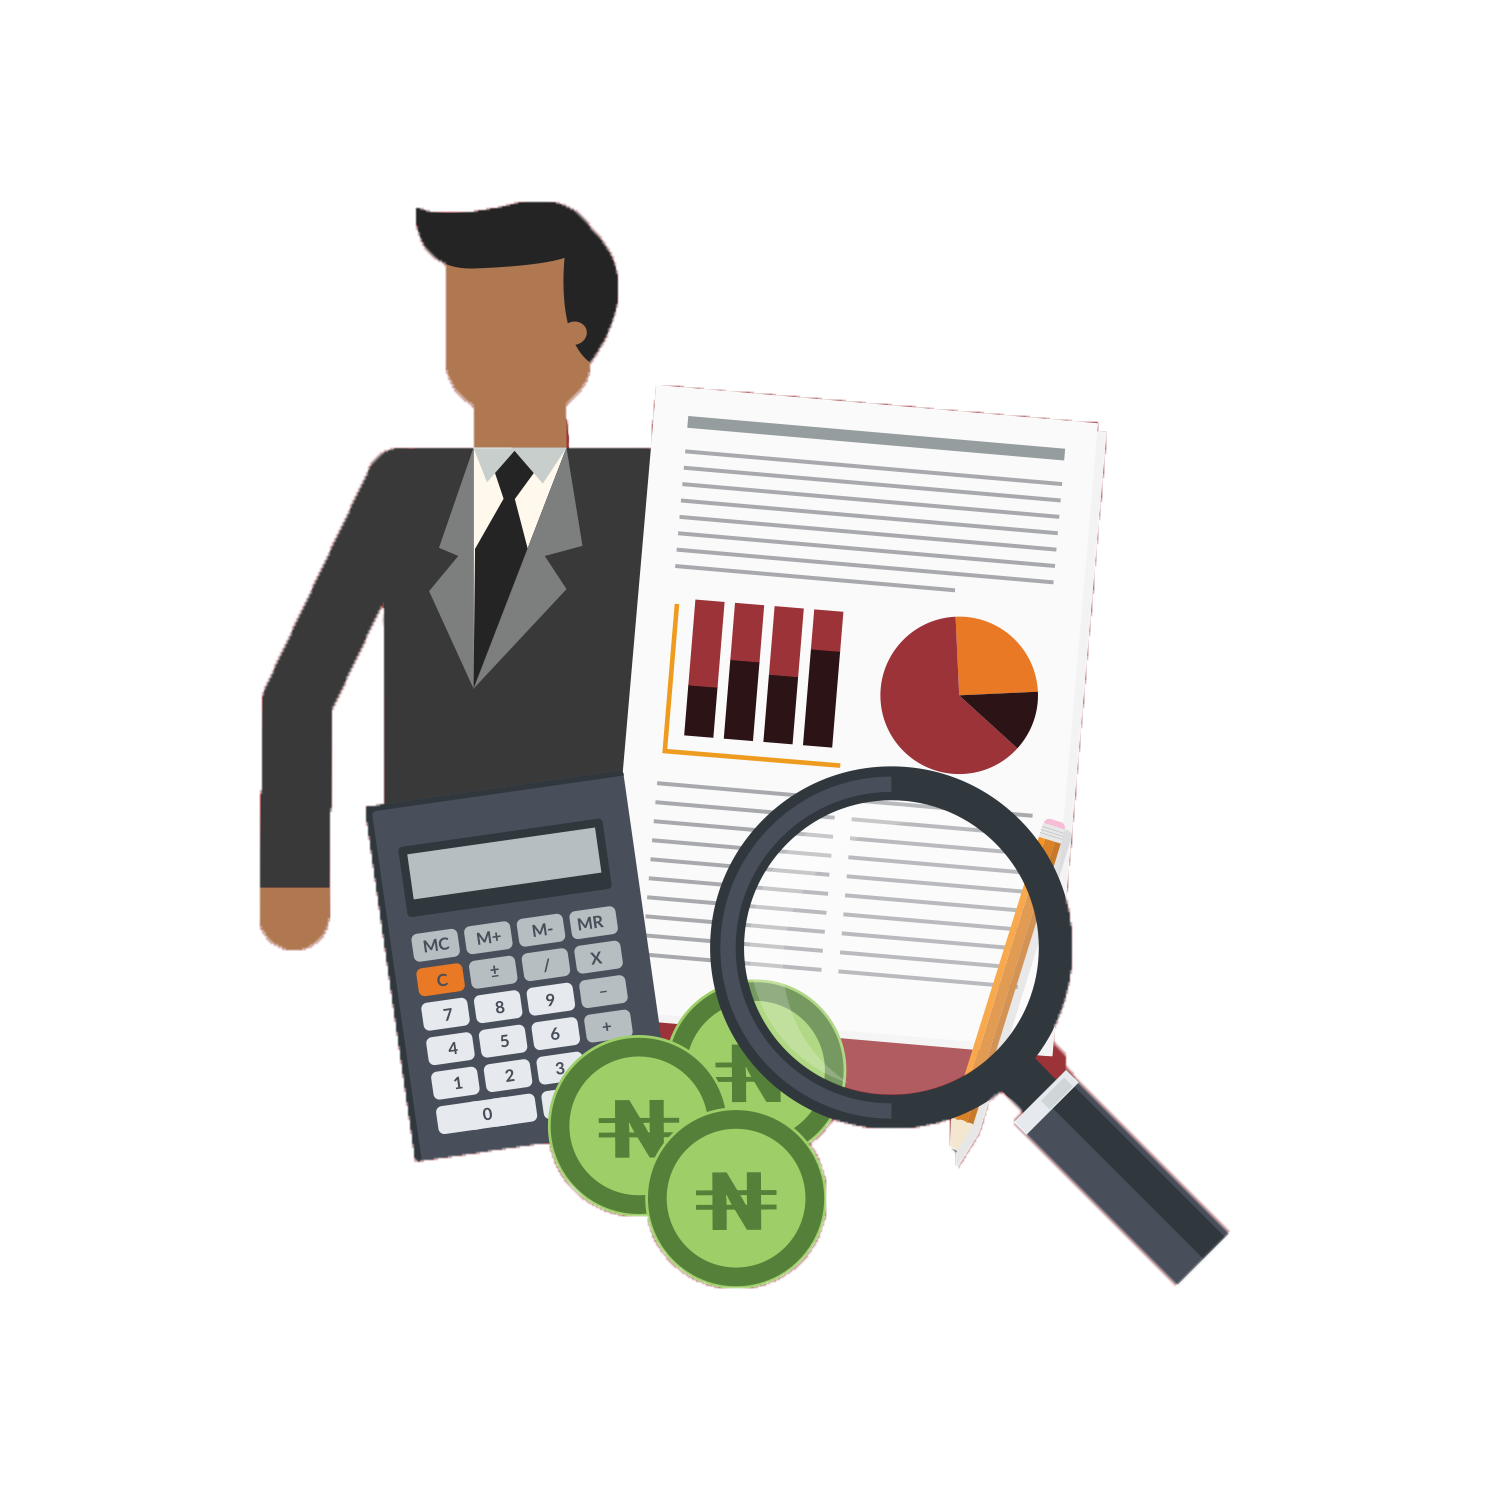 Accounting clipart tax consultant. Bridged wall consulting my